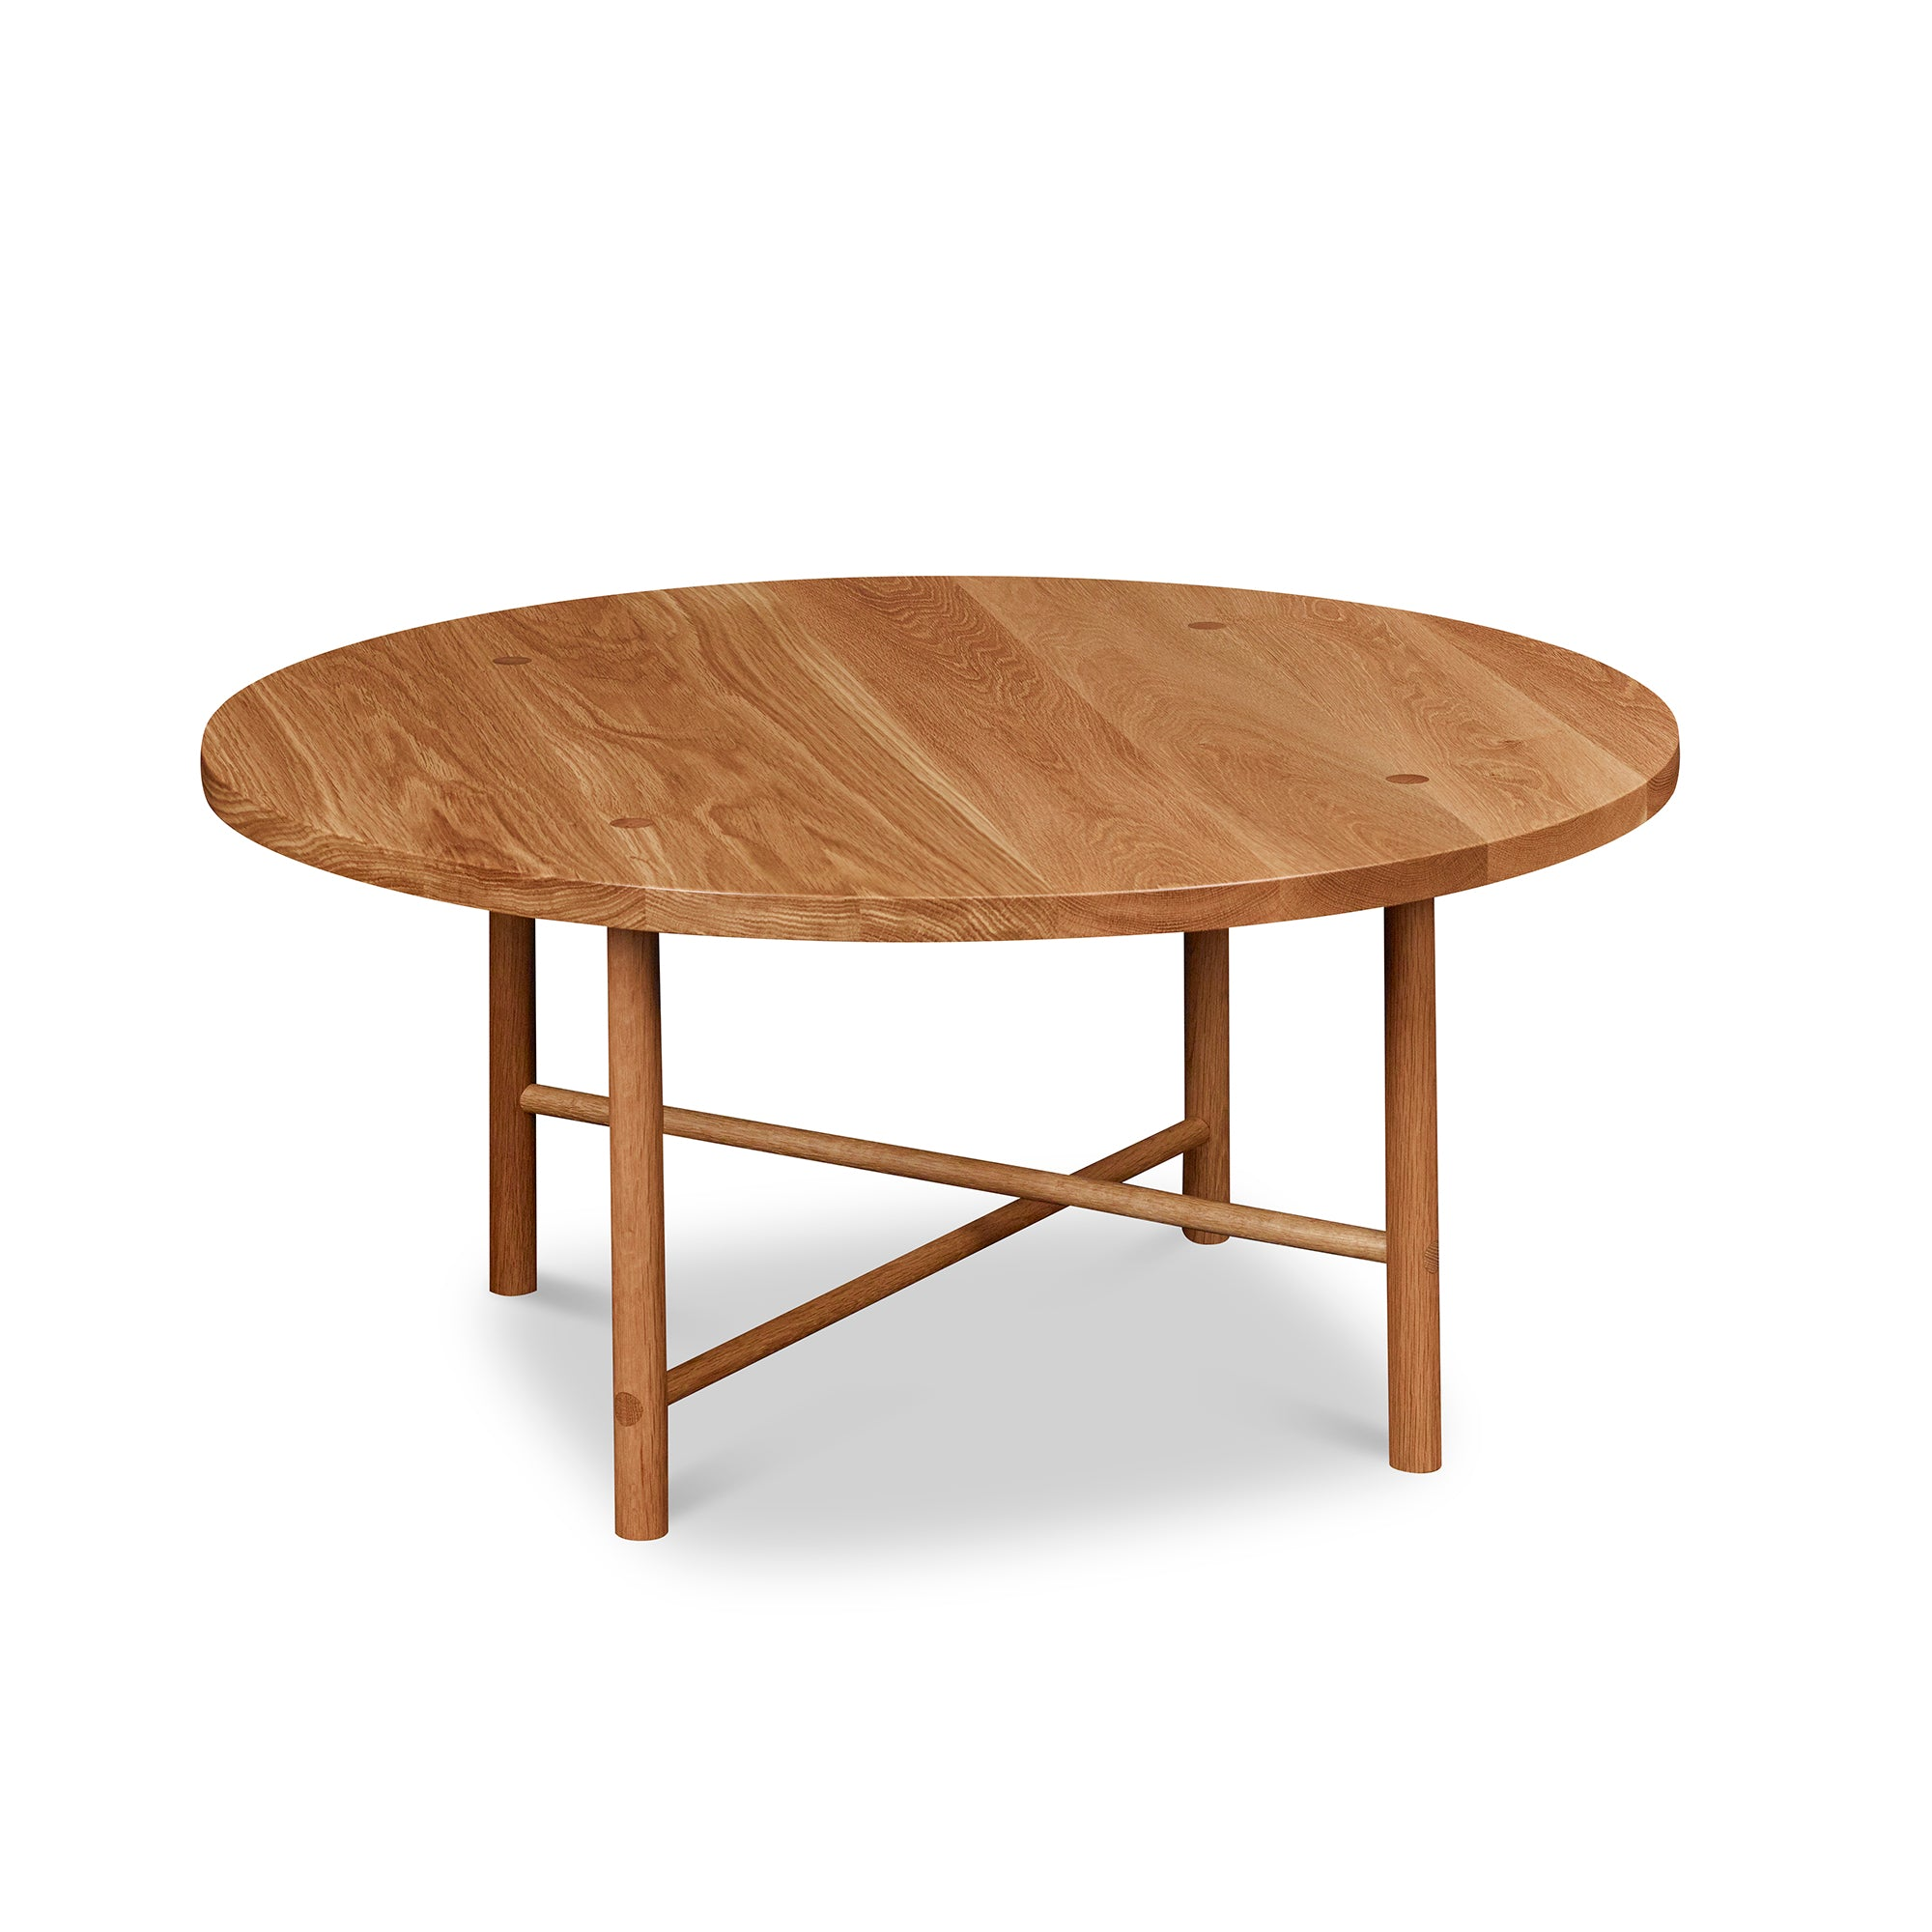 Round Scandinavian style coffee table with round legs in white oak